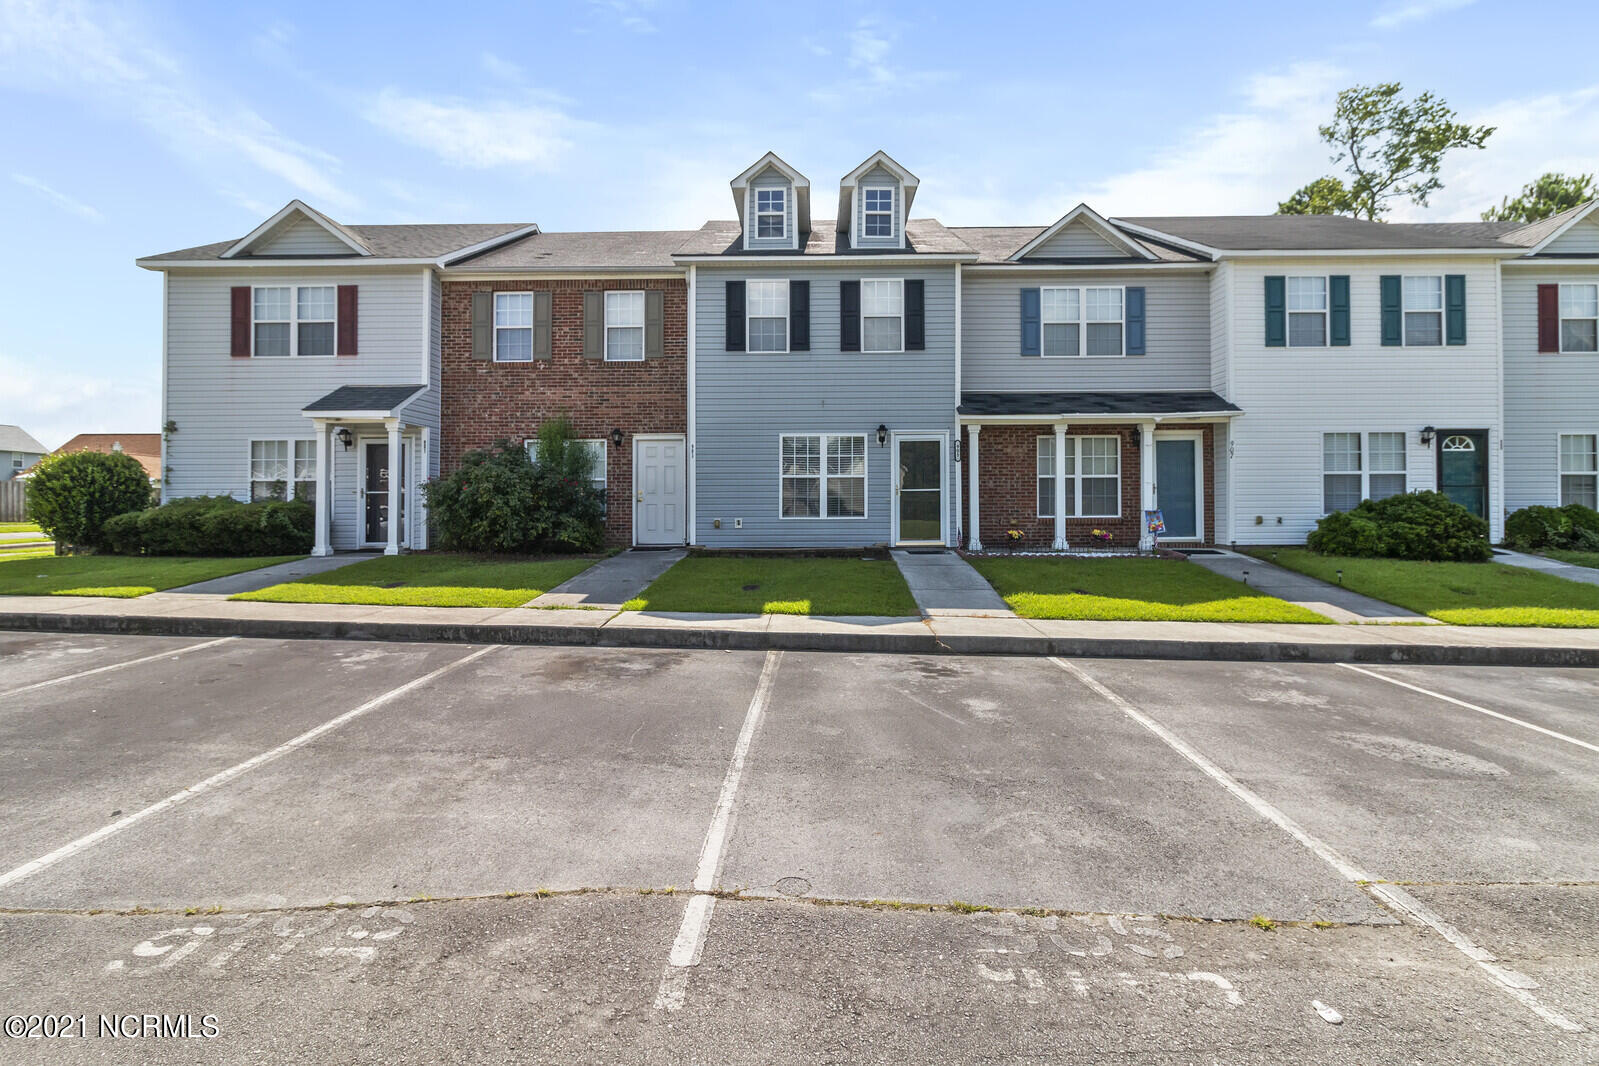 Welcome home to Marsh Oaks at Brynn Marr! Located just minutes from all things Jacksonville. 5 minutes from Camp Lejeune's main gate, 5 minutes from the mall, and 7 minutes from the main shopping areas on Western Blvd. 2 bedrooms boast 2 in room bathrooms and a downstairs half bath for guests! With a fenced in back yard the possibilities are endless.